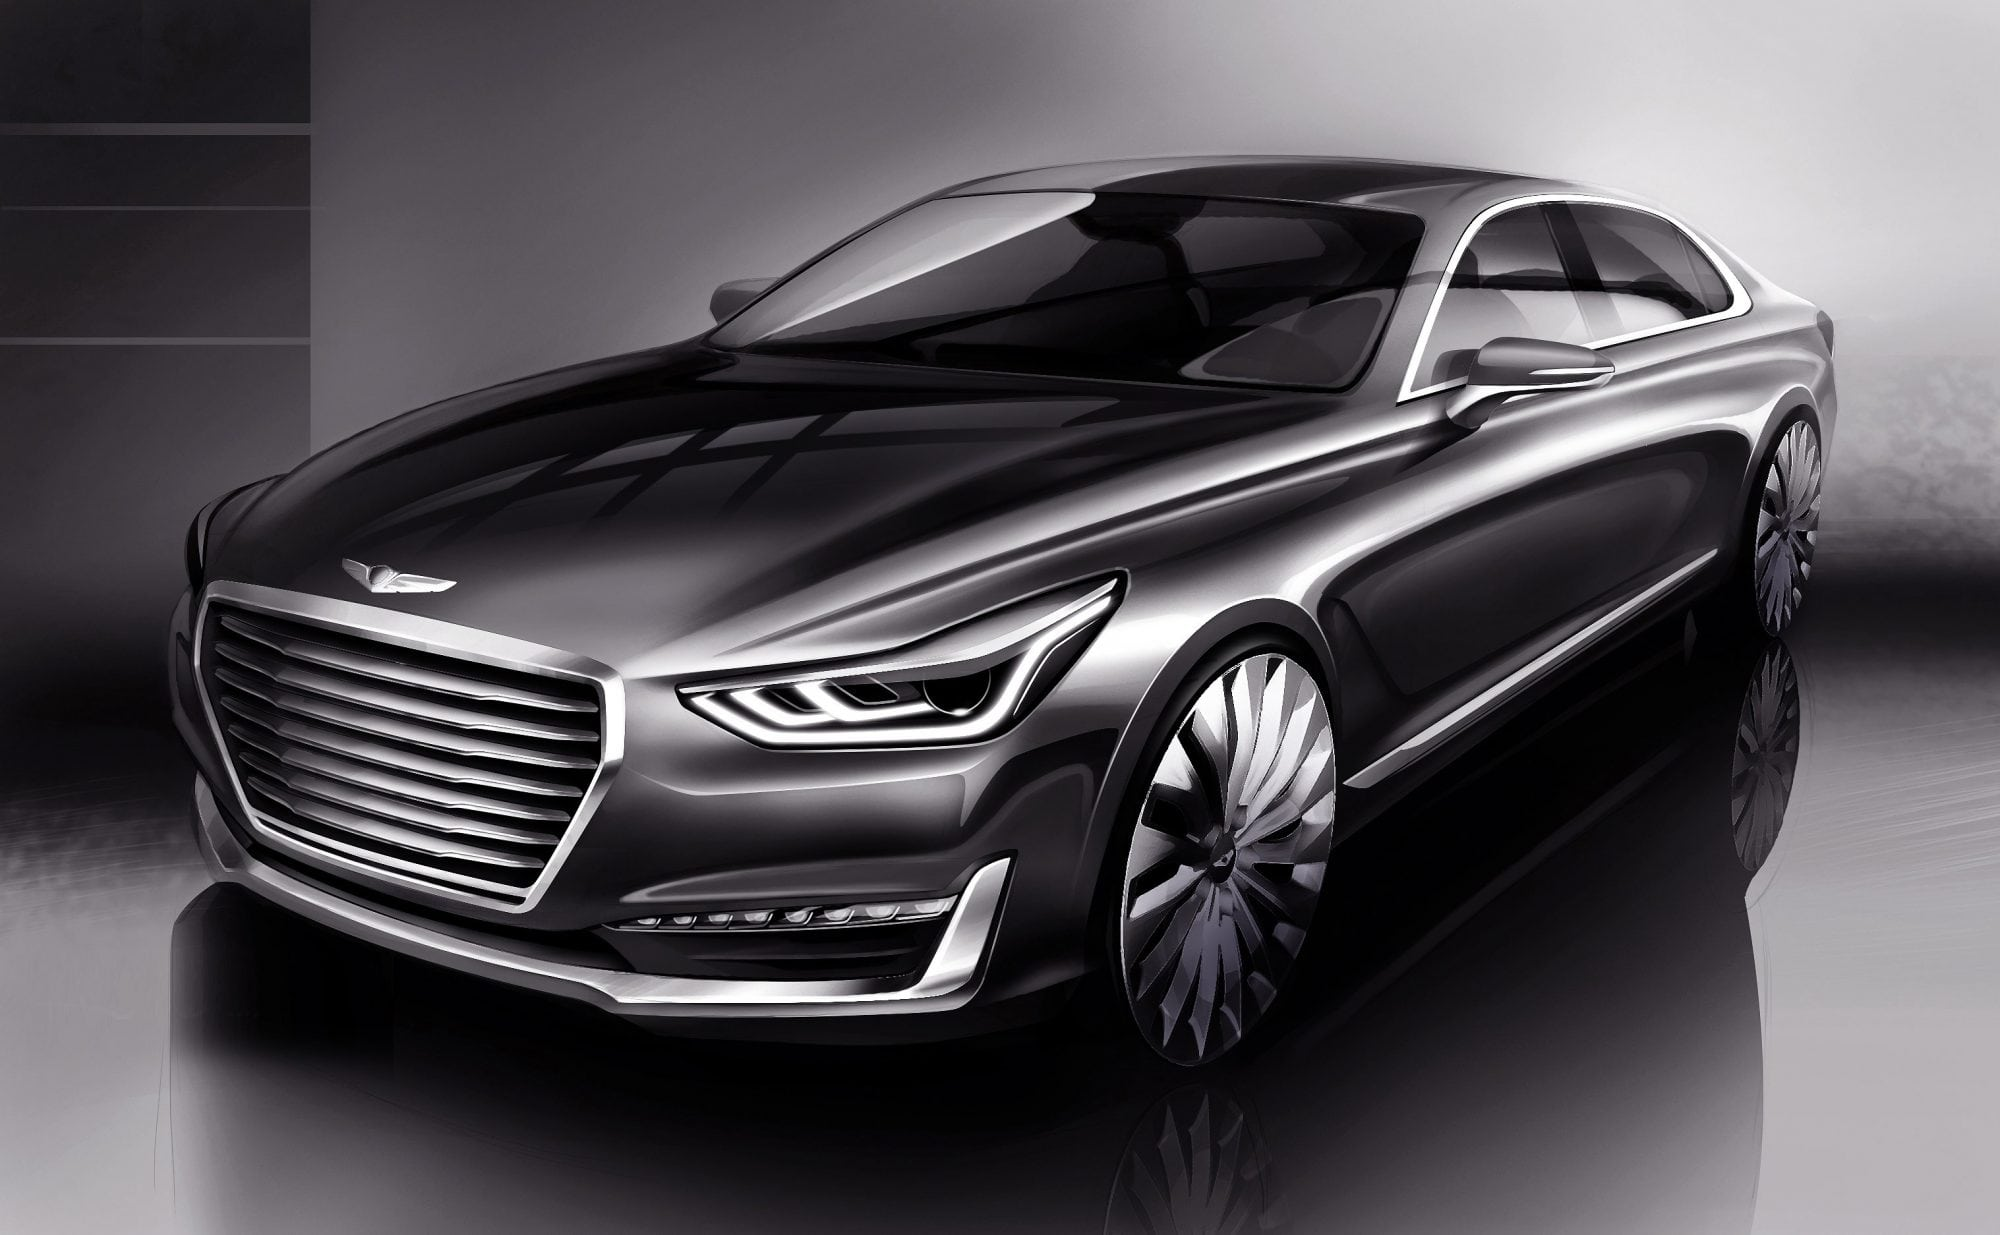 genesis brand launches with g90 luxury flagship sedan